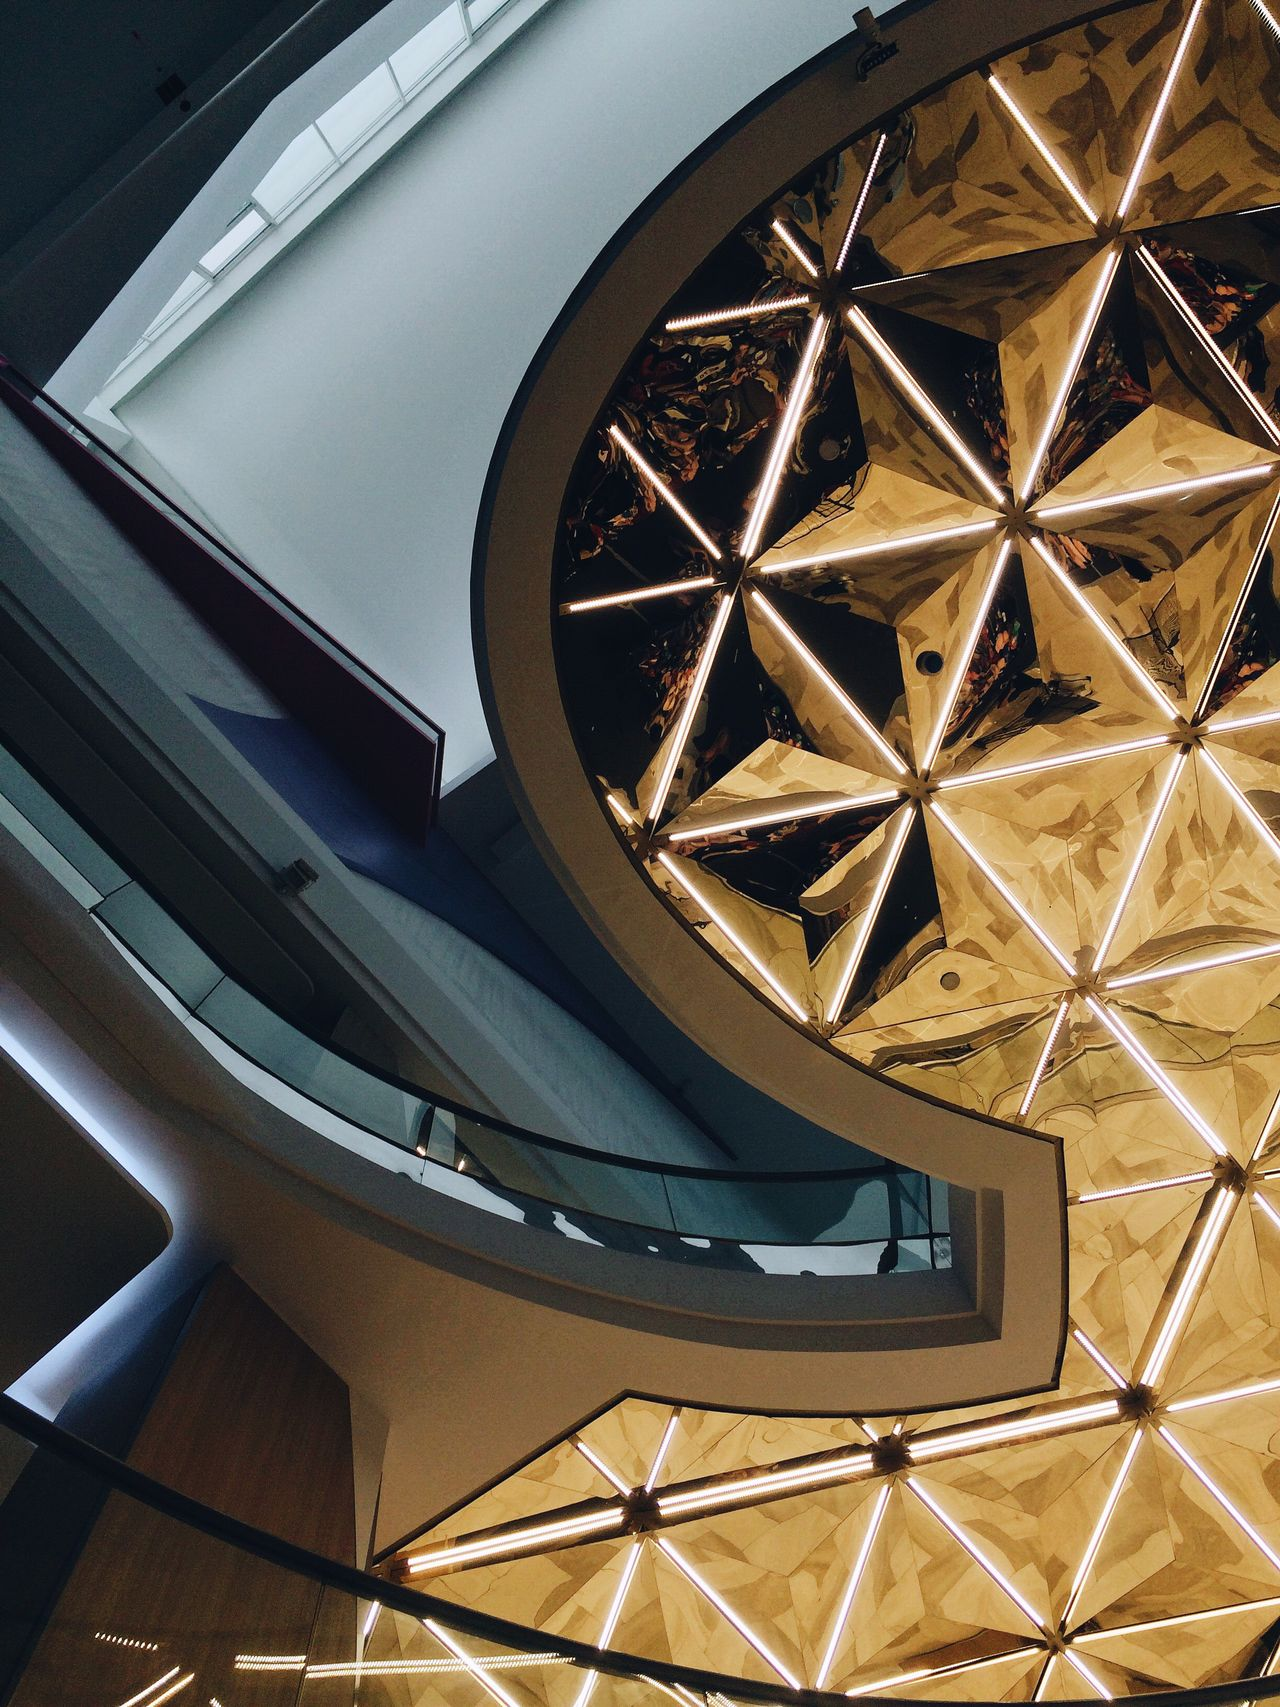 Interior Design Architecture Built Structure Low Angle View Indoors  City Modern Simplicity Is Beauty. VSCO Cam IPhoneography Abstract Abstract Photography My Point Of View Interior The Architect - 2017 EyeEm Awards